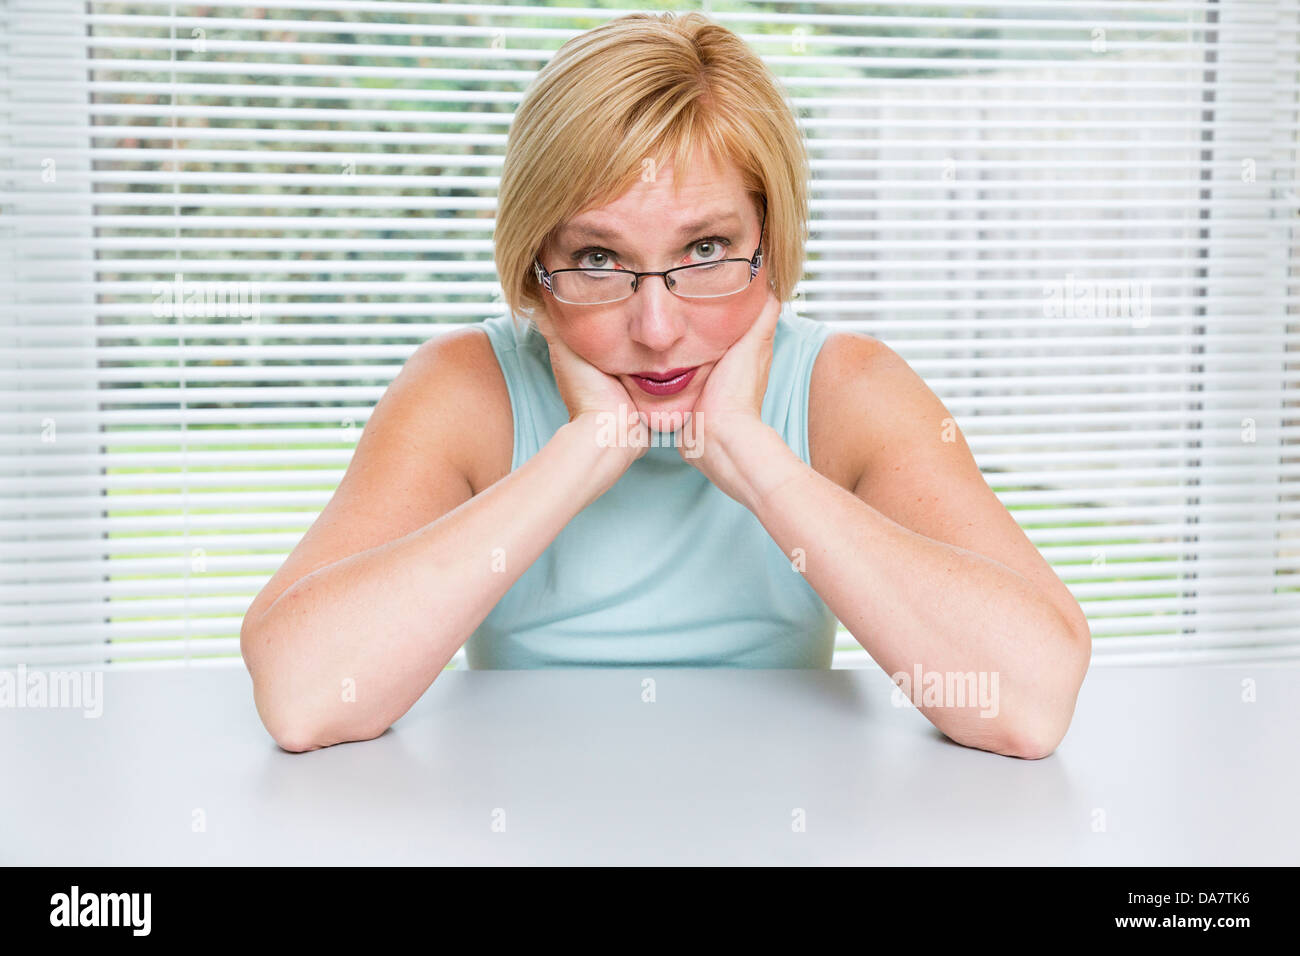 woman looking worried and concerned - Stock Image